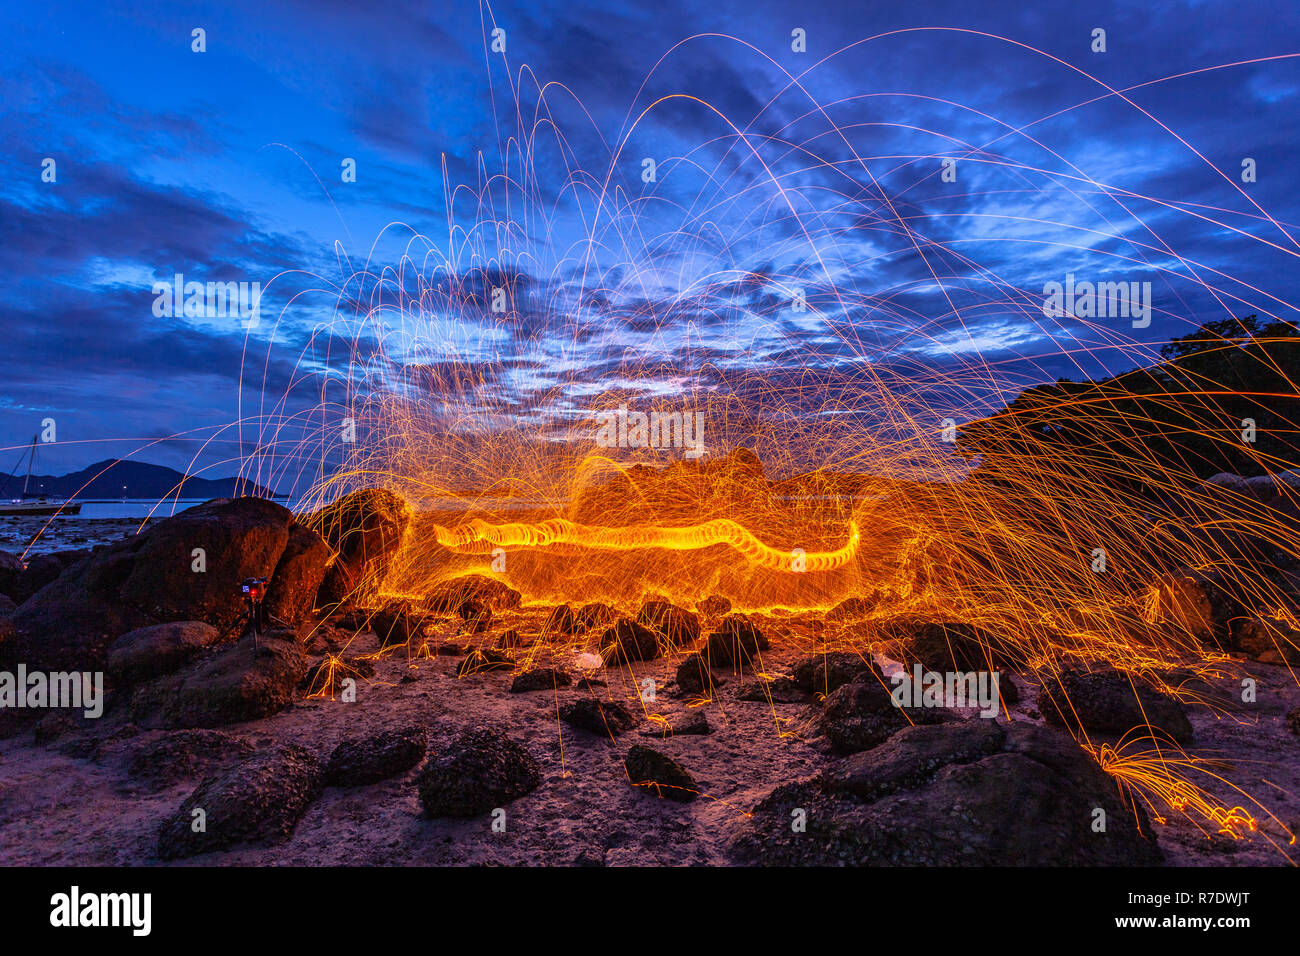 cool burning steel wool fire work photo experiments on the rock at sunrise. Stock Photo